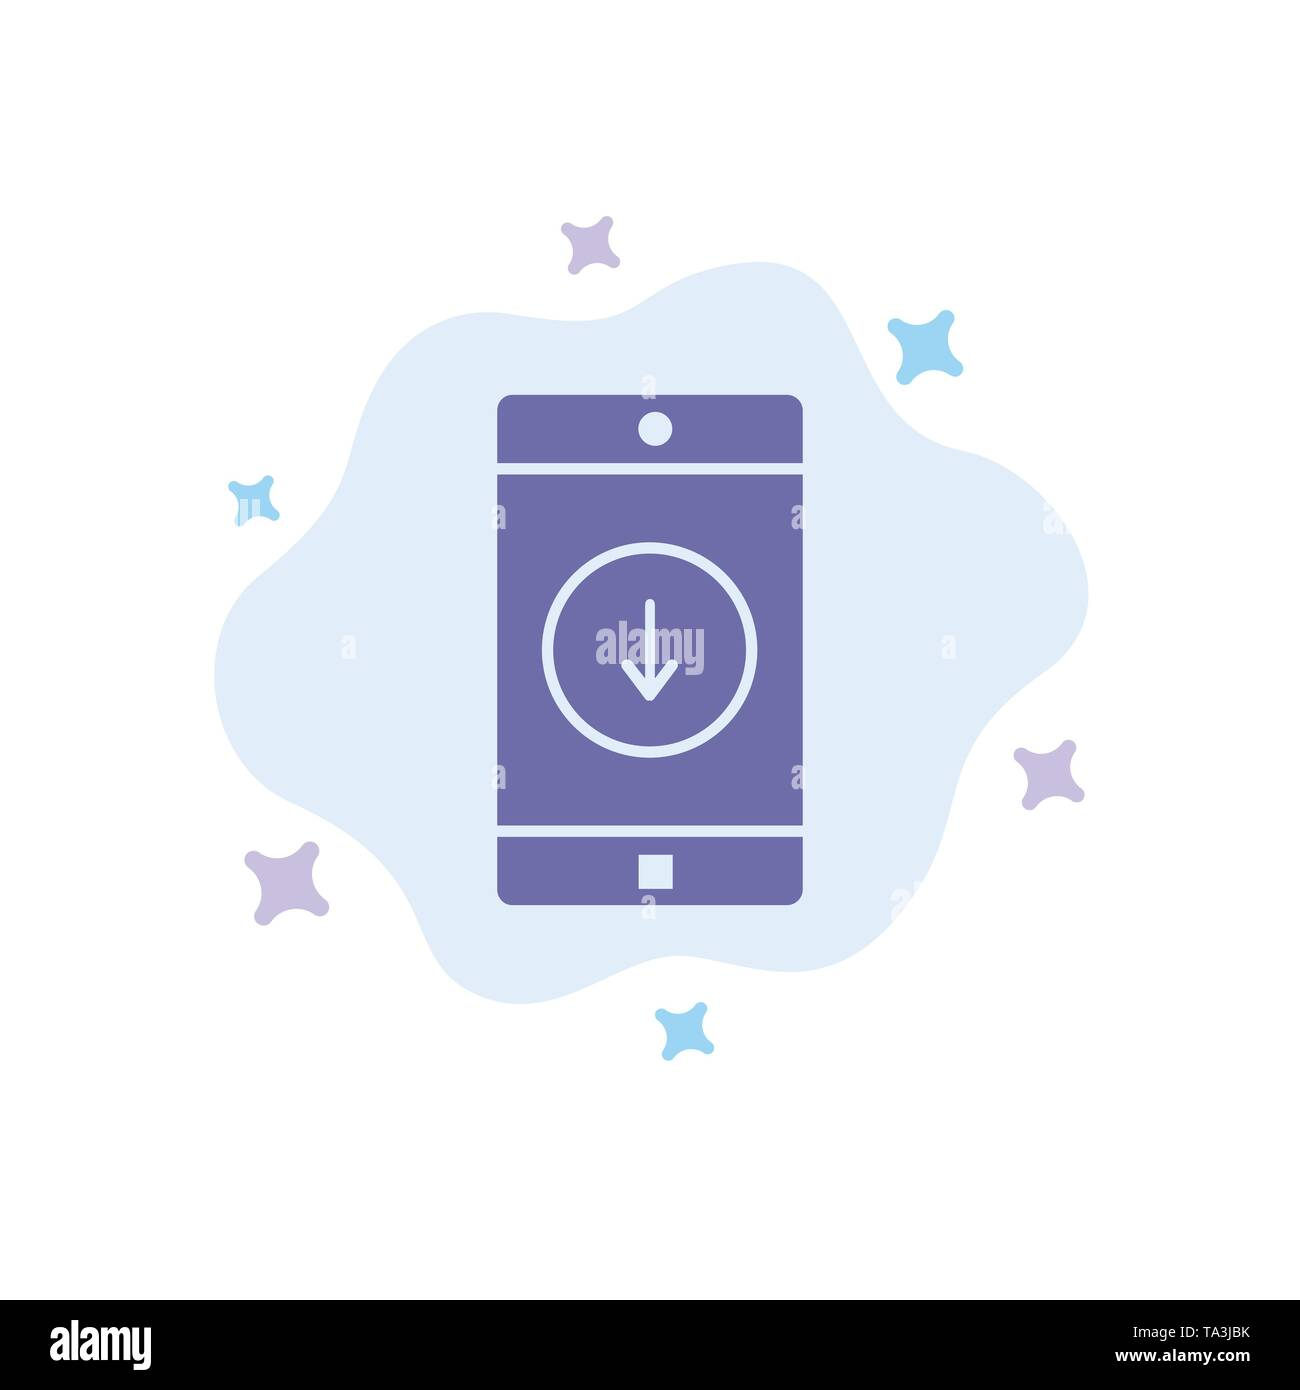 Application, Mobile, Mobile Application, Down, Arrow Blue Icon on Abstract Cloud Background - Stock Image